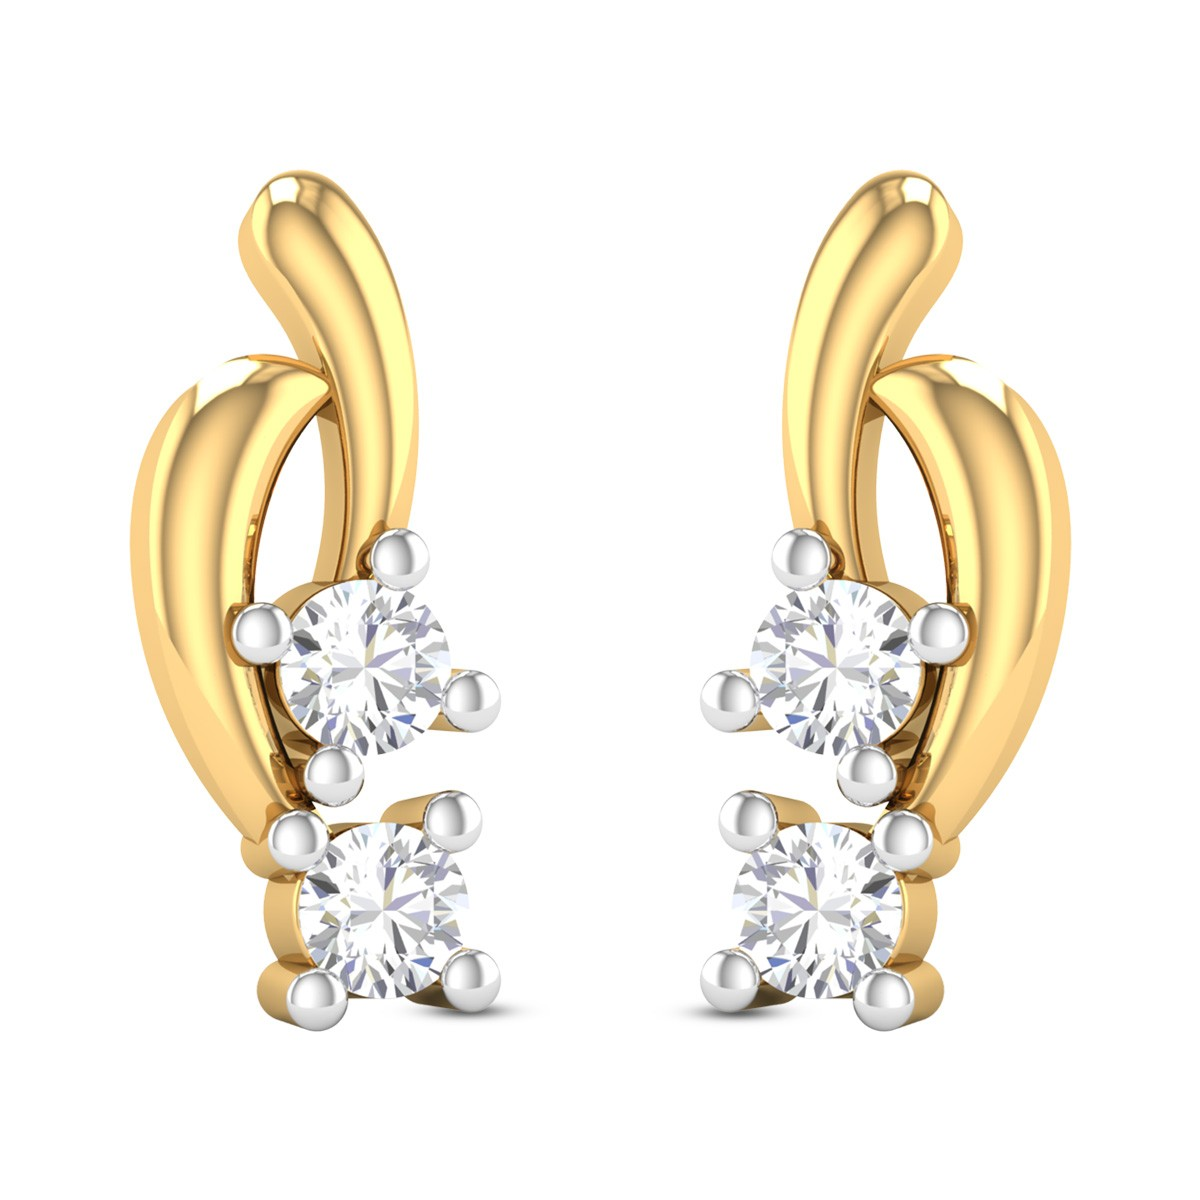 Daliah Diamond Earrings